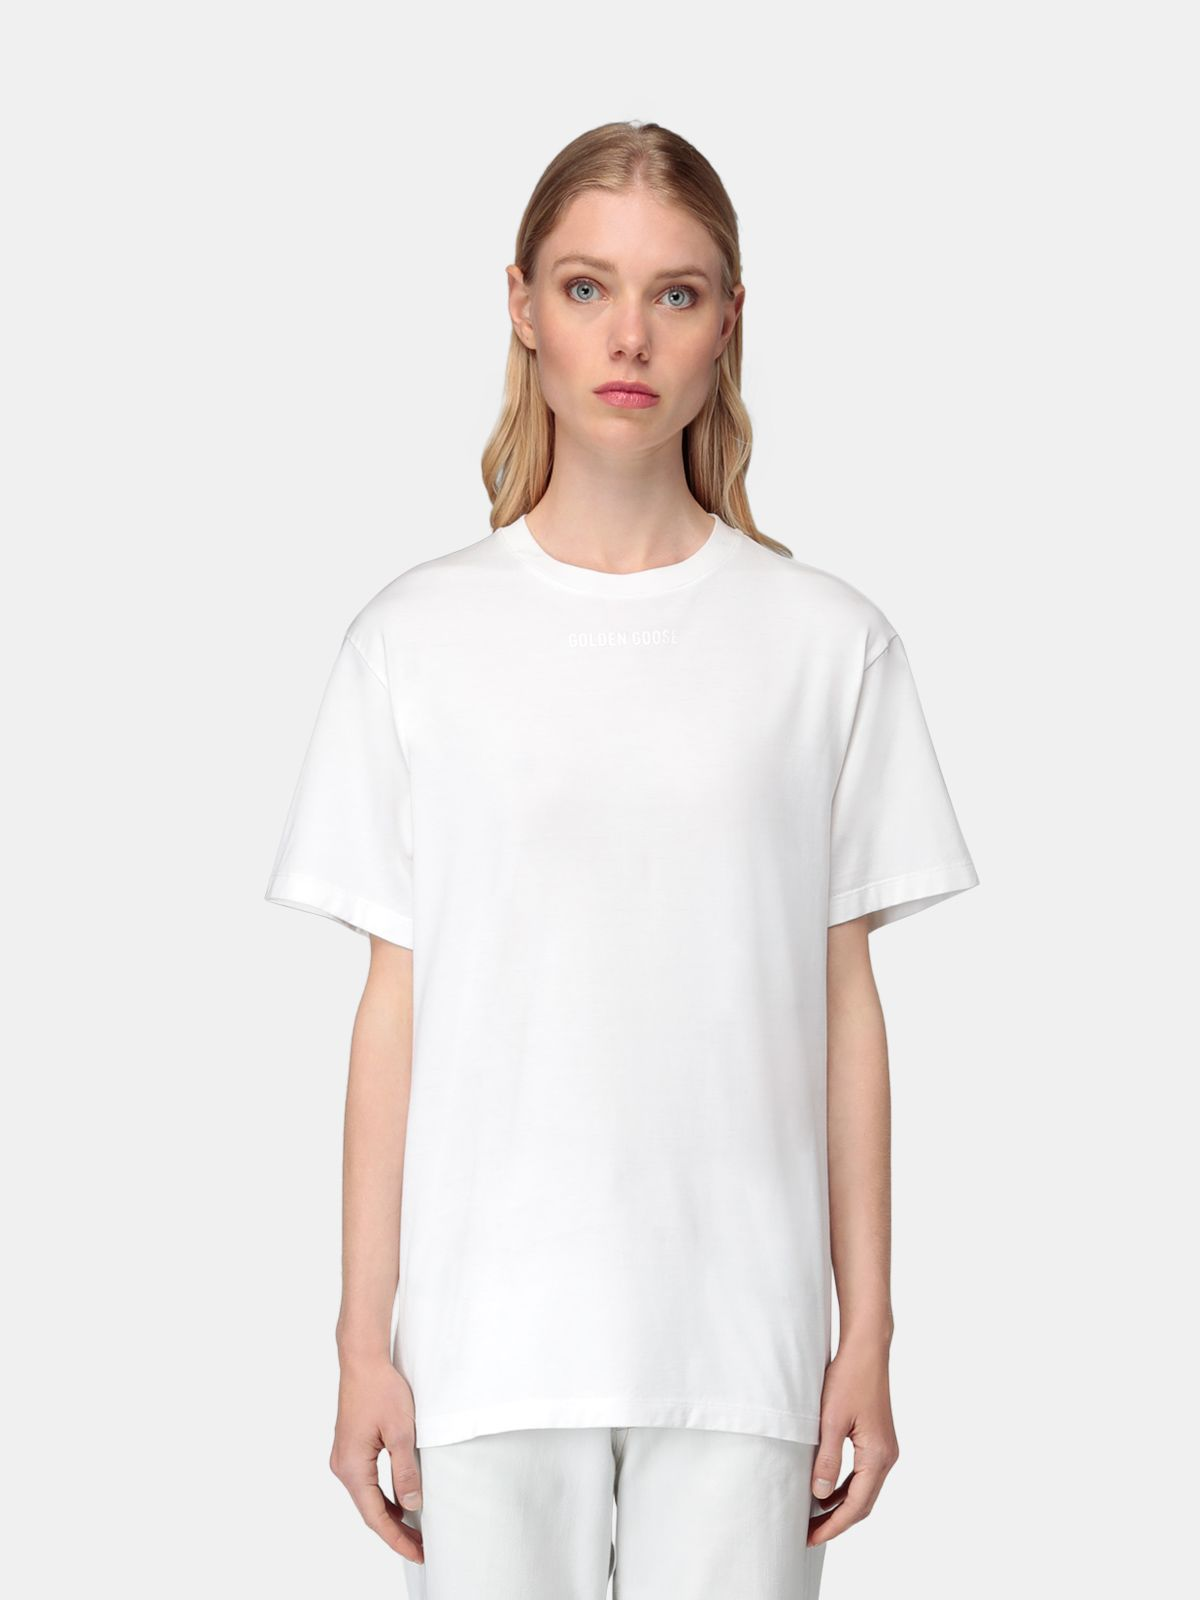 Golden Goose - Golden T-shirt in white with glittery print on the back in